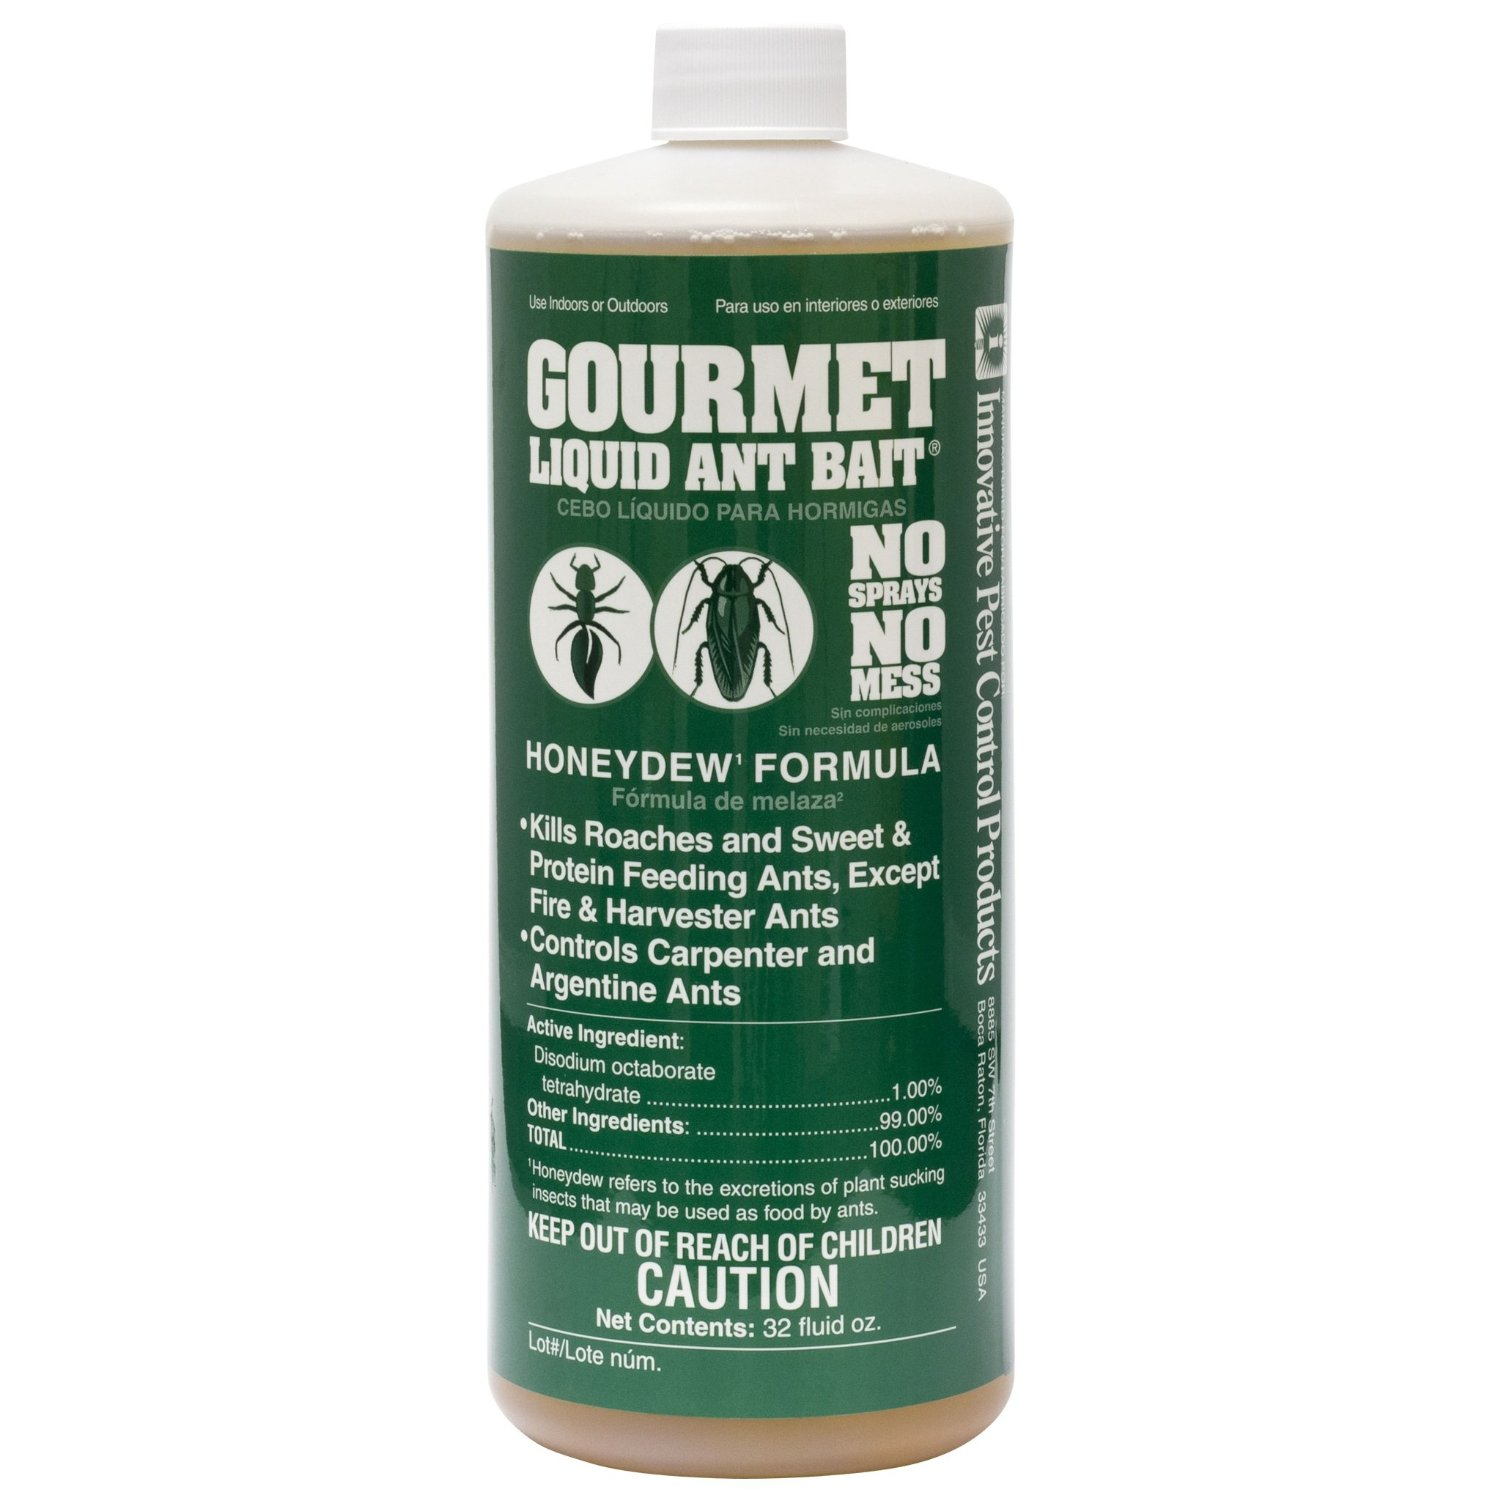 Gourmet Liquid Ant Bait - CASE (12 bottles)